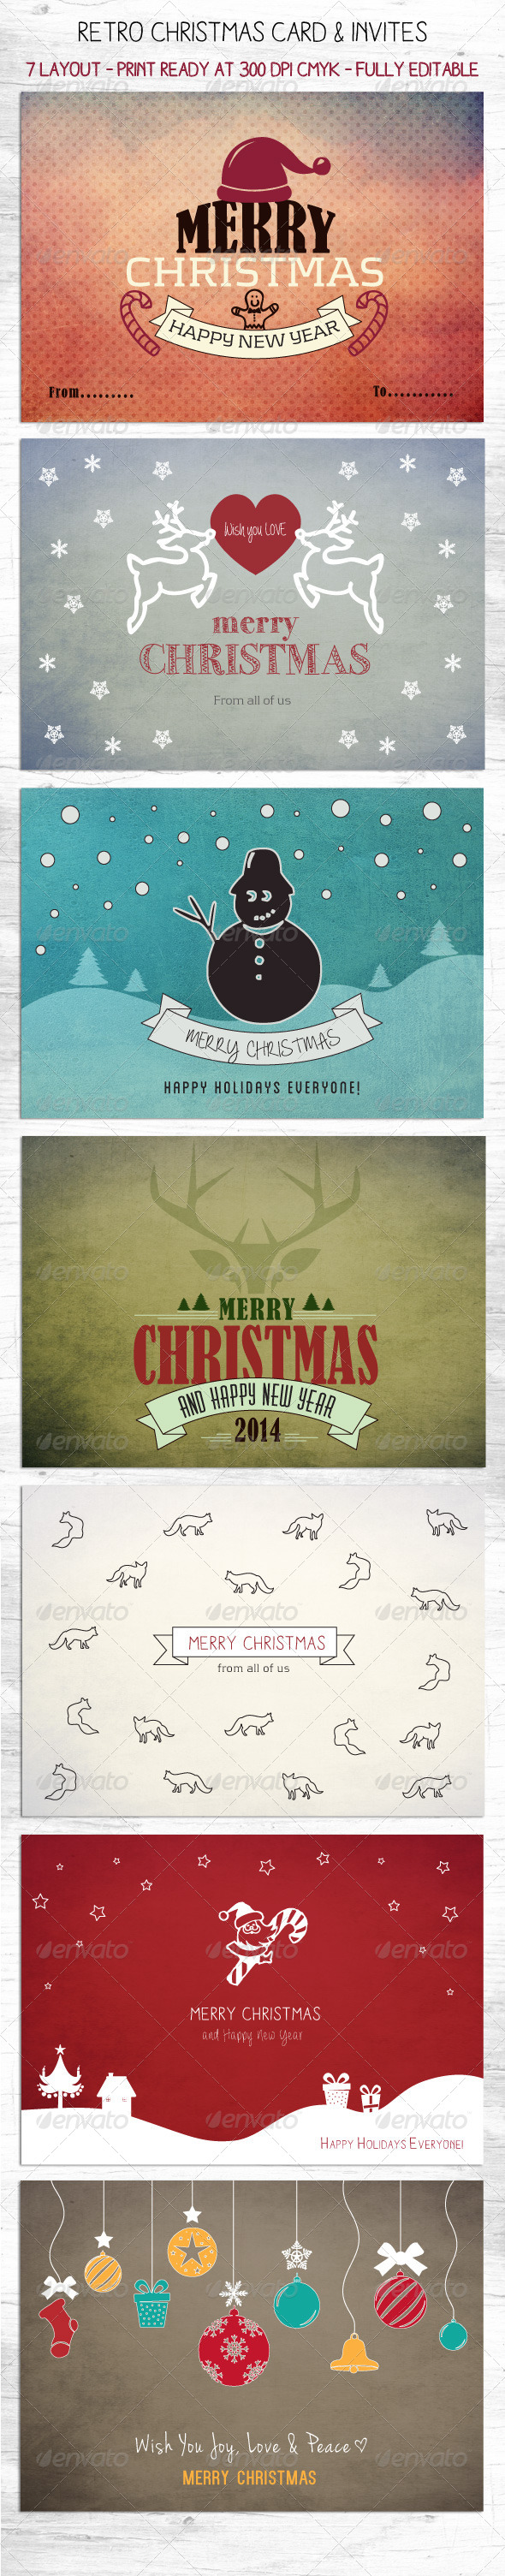 Retro Christmas Card & Invites - Backgrounds Graphics